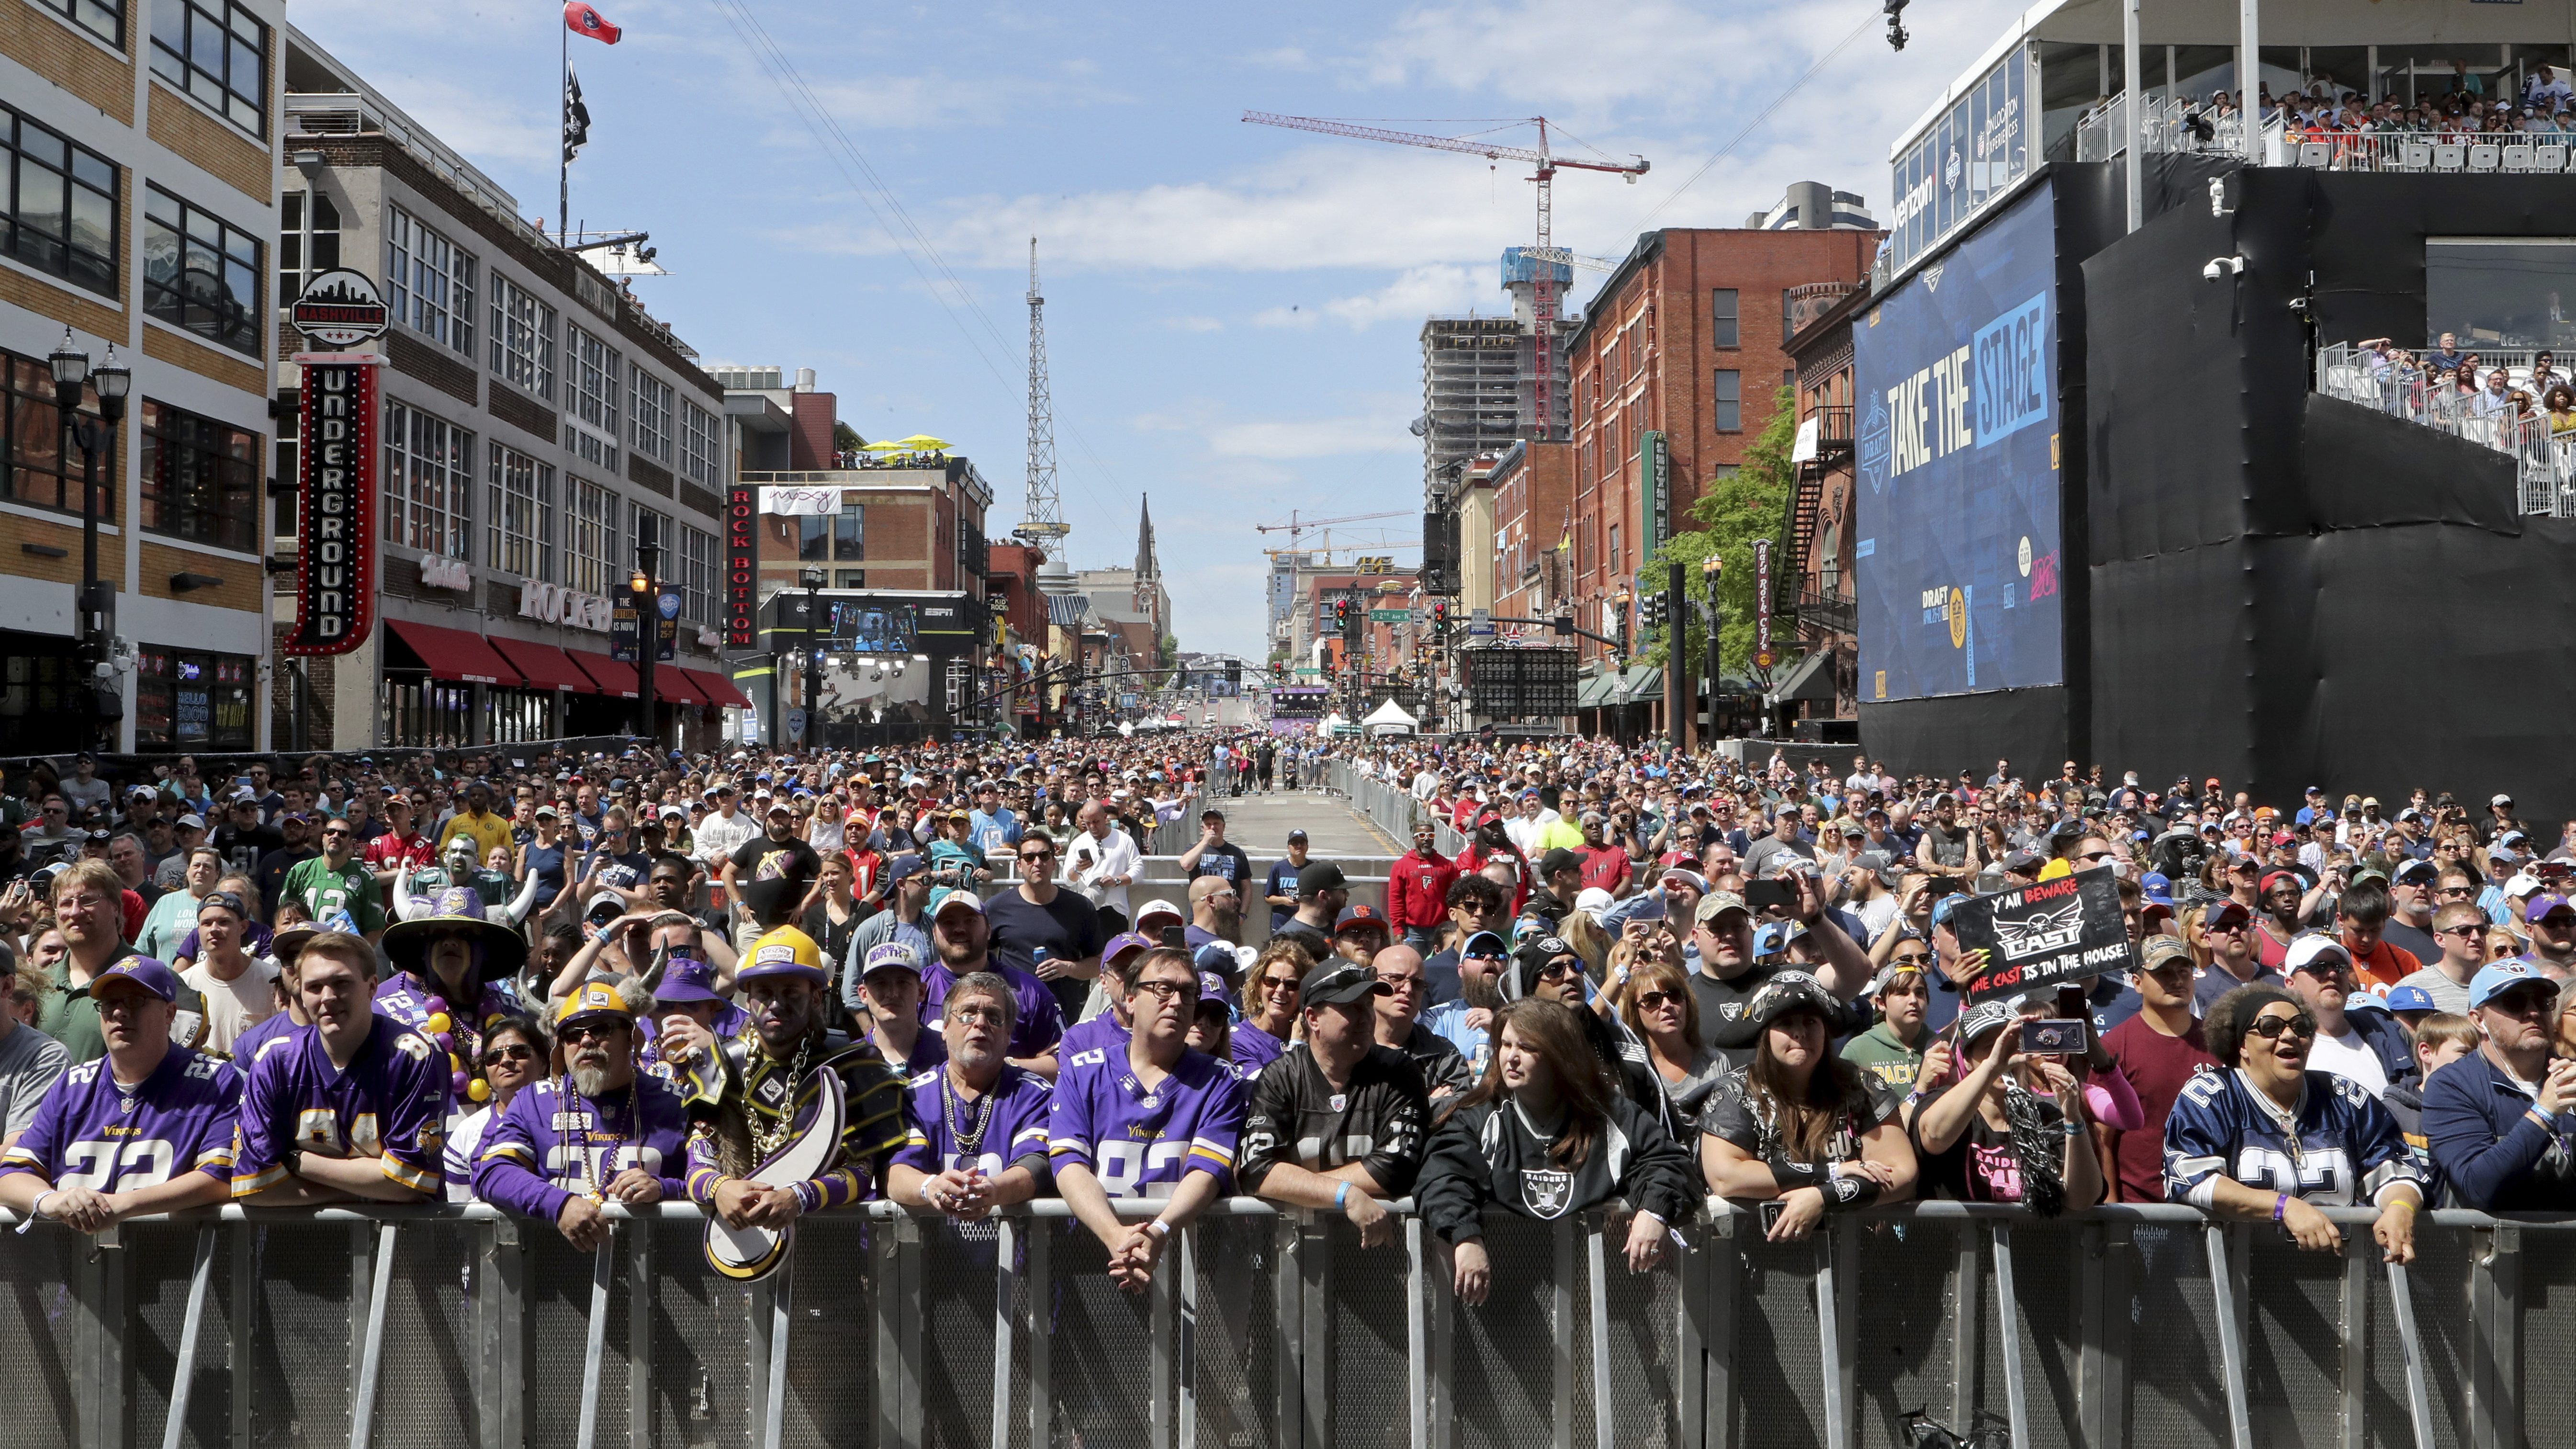 Fans line Broadway before the start of Day 3 of the NFL football draft, in Nashville, Tenn. on Saturday, April 27, 2019.